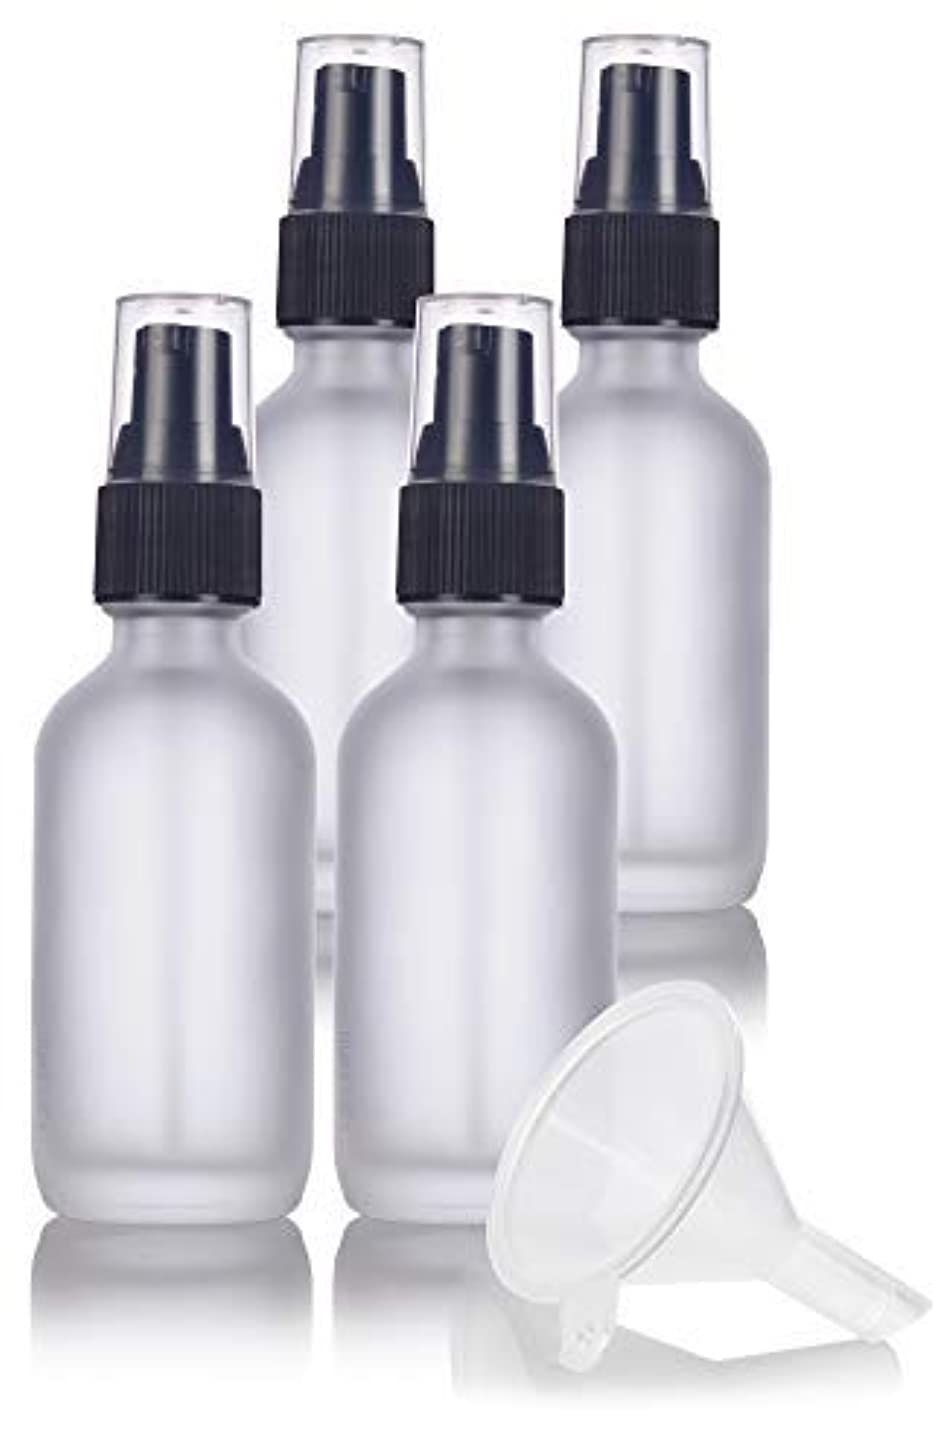 粘性のエンディング長方形2 oz Frosted Clear Glass Boston Round Treatment Pump Bottle (4 pack) + Funnel and Labels for cosmetics, serums...